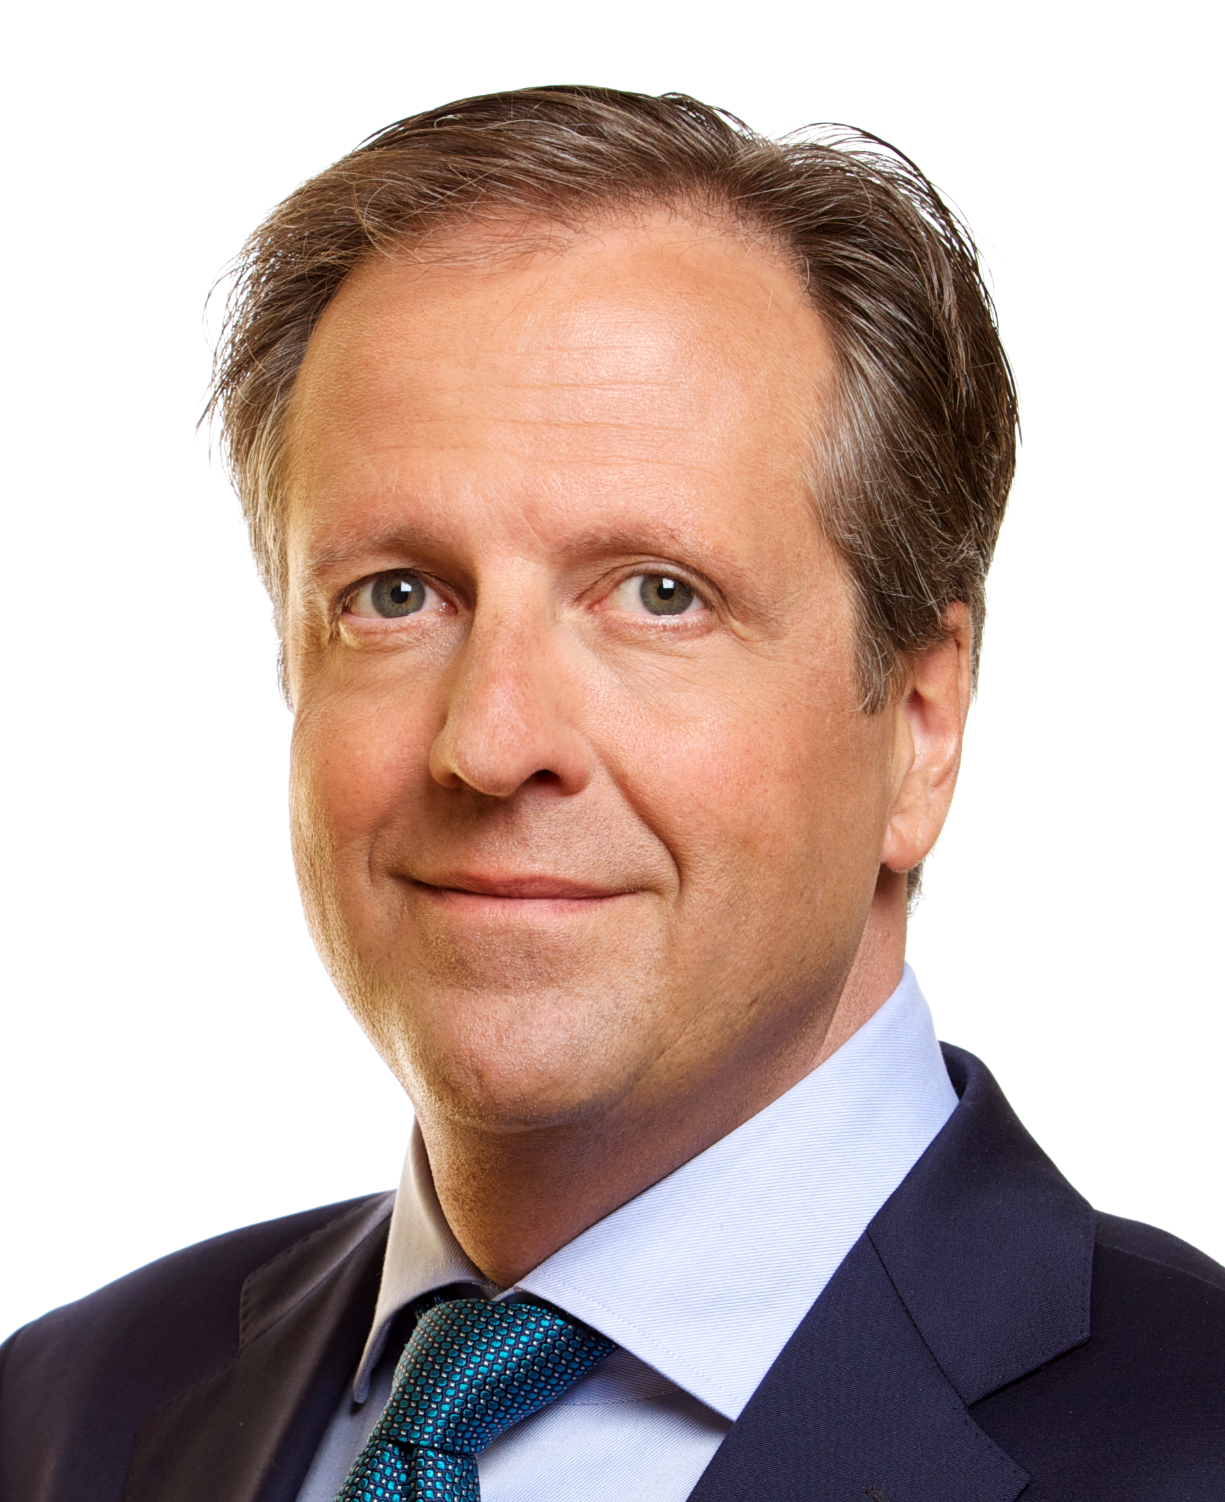 The 52-year old son of father (?) and mother(?) Alexander Pechtold in 2018 photo. Alexander Pechtold earned a  million dollar salary - leaving the net worth at 1,1 million in 2018